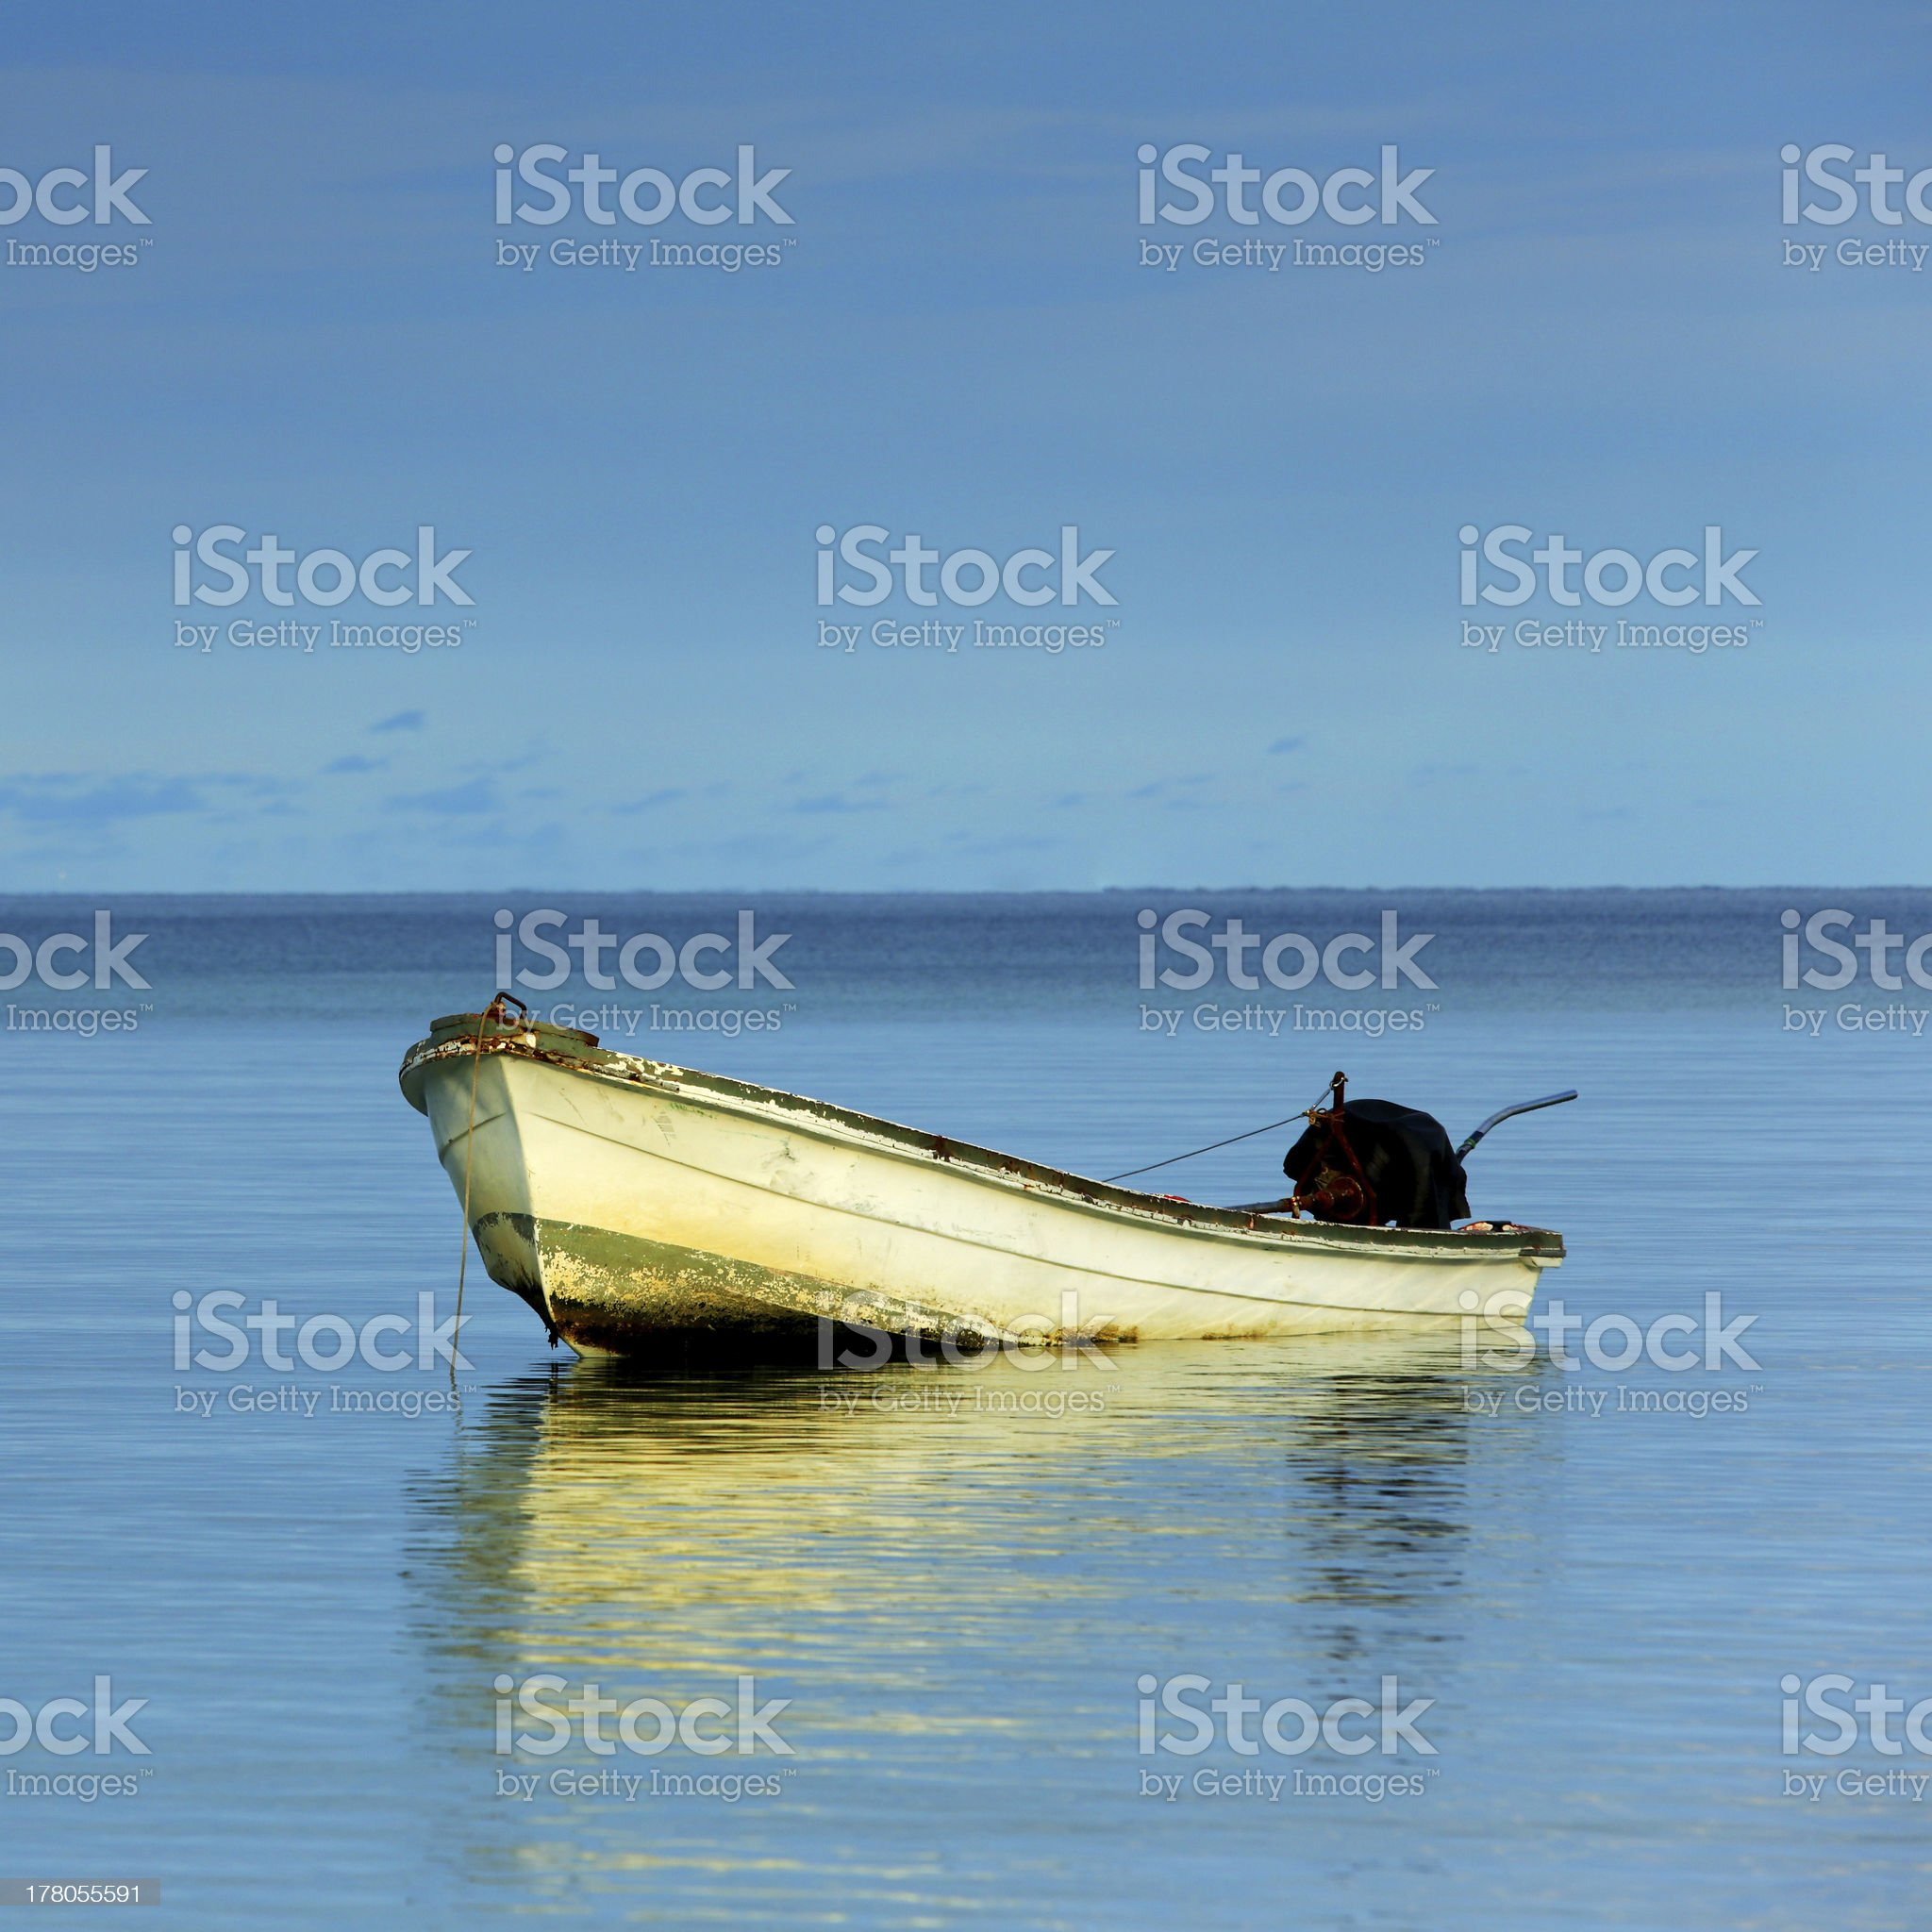 Fishing Boat Alone on Calm Morning Sea royalty-free stock photo